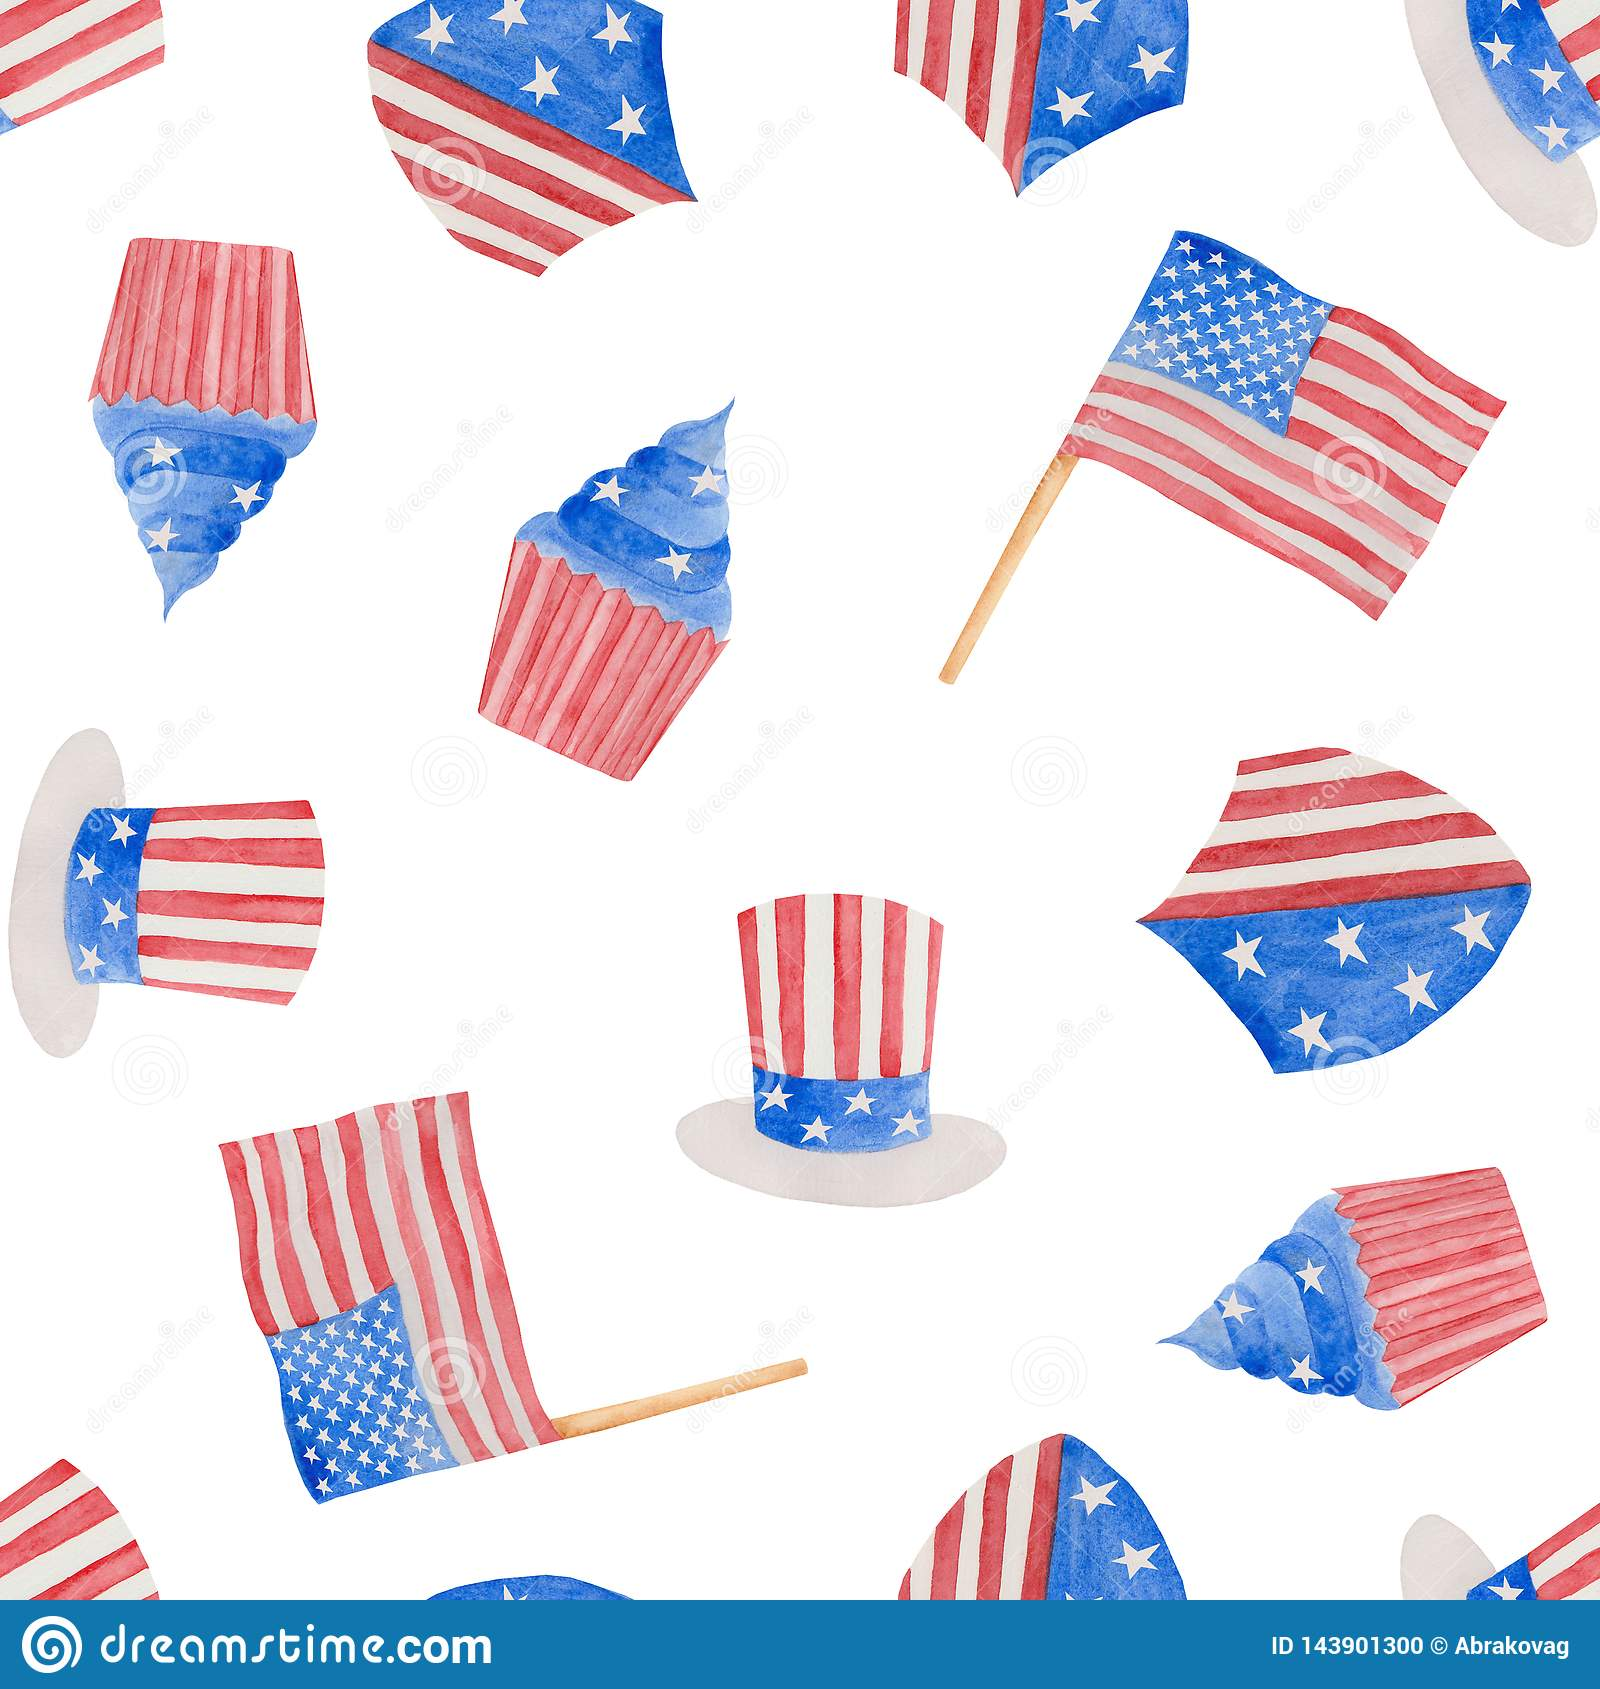 Watercolor illustration 4th of july independence day in USA